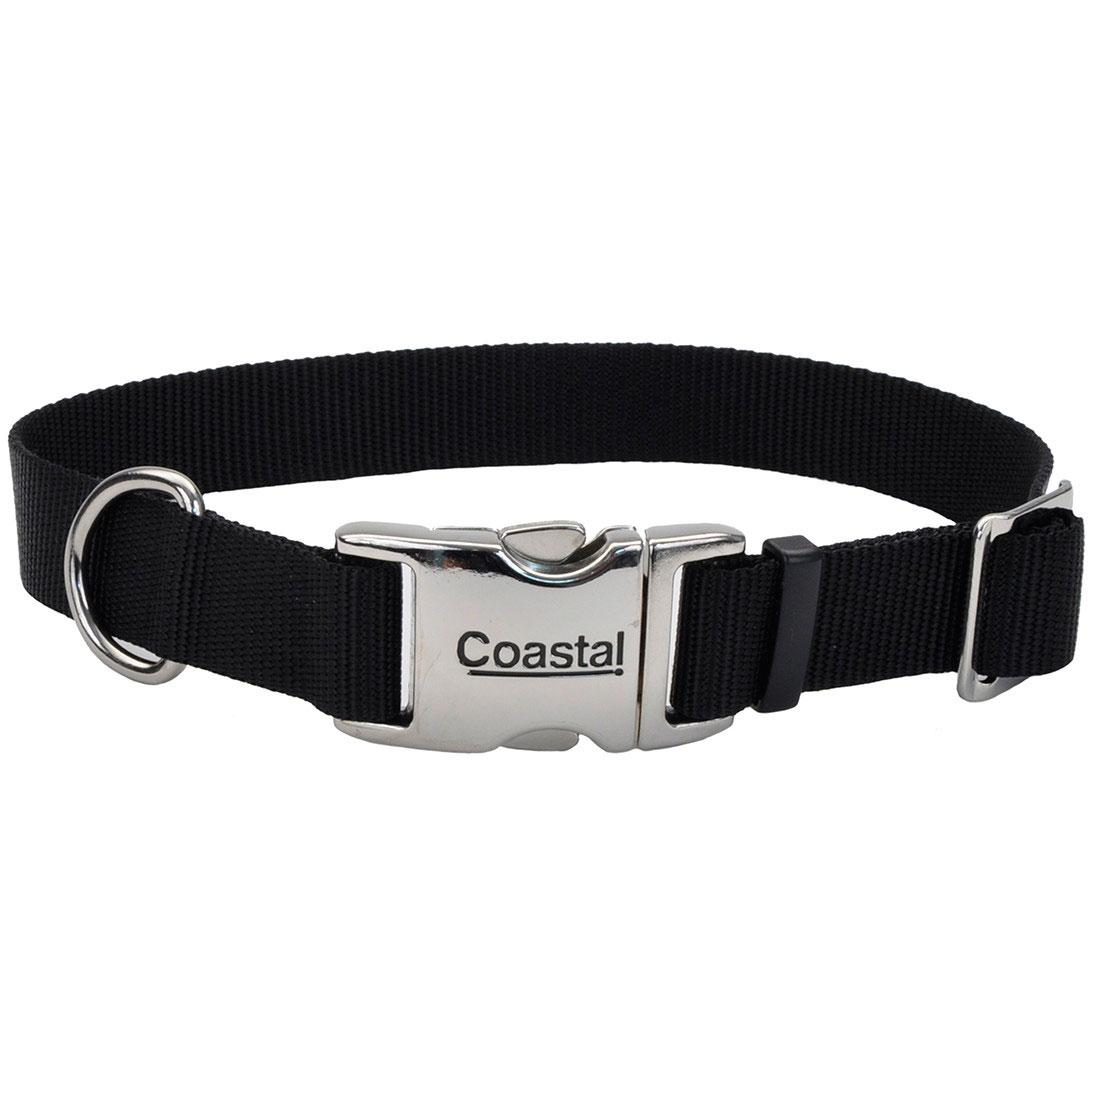 Coastal Adjustable Collar with Metal Buckle for Dogs, Black, 5/8-in x 10-14-in